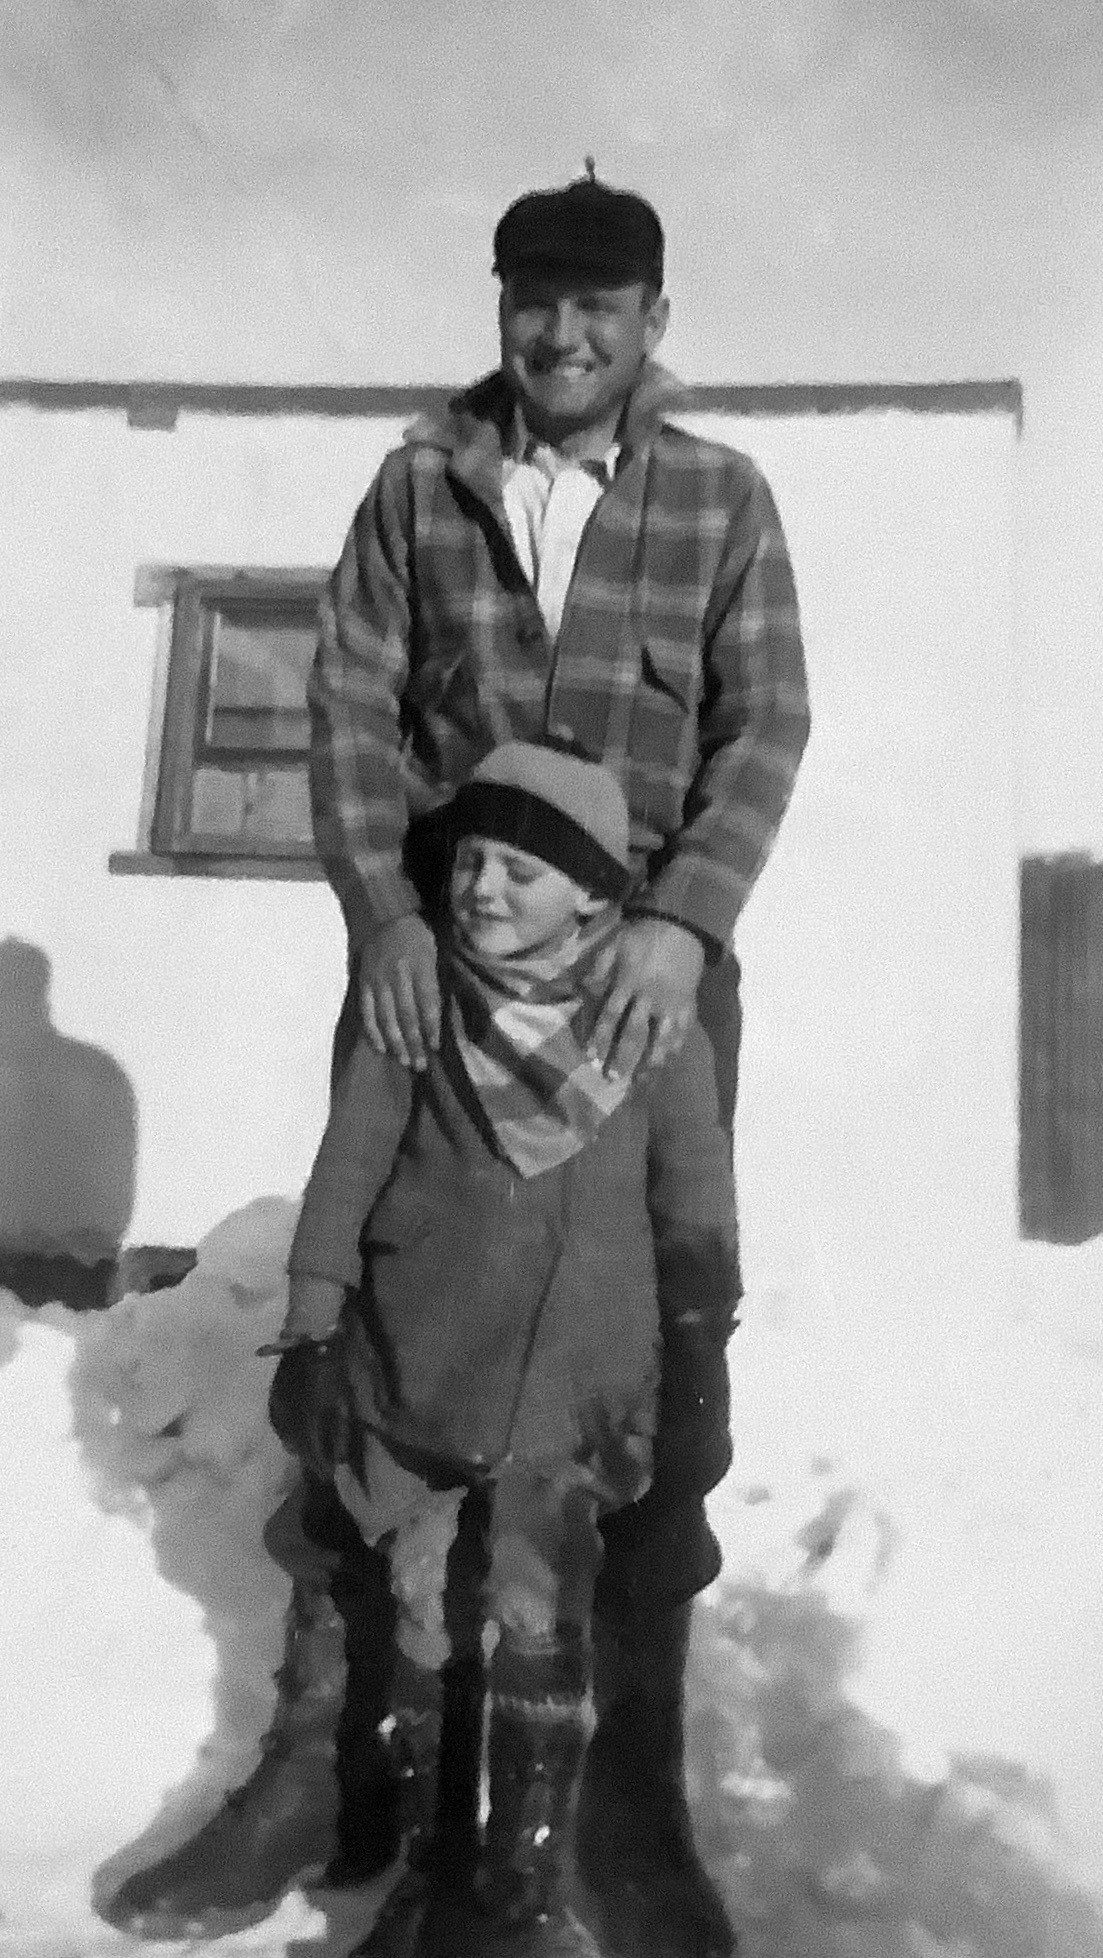 Man smiling with hands on child's shoulders, standing in outdoors with snow pile behind them